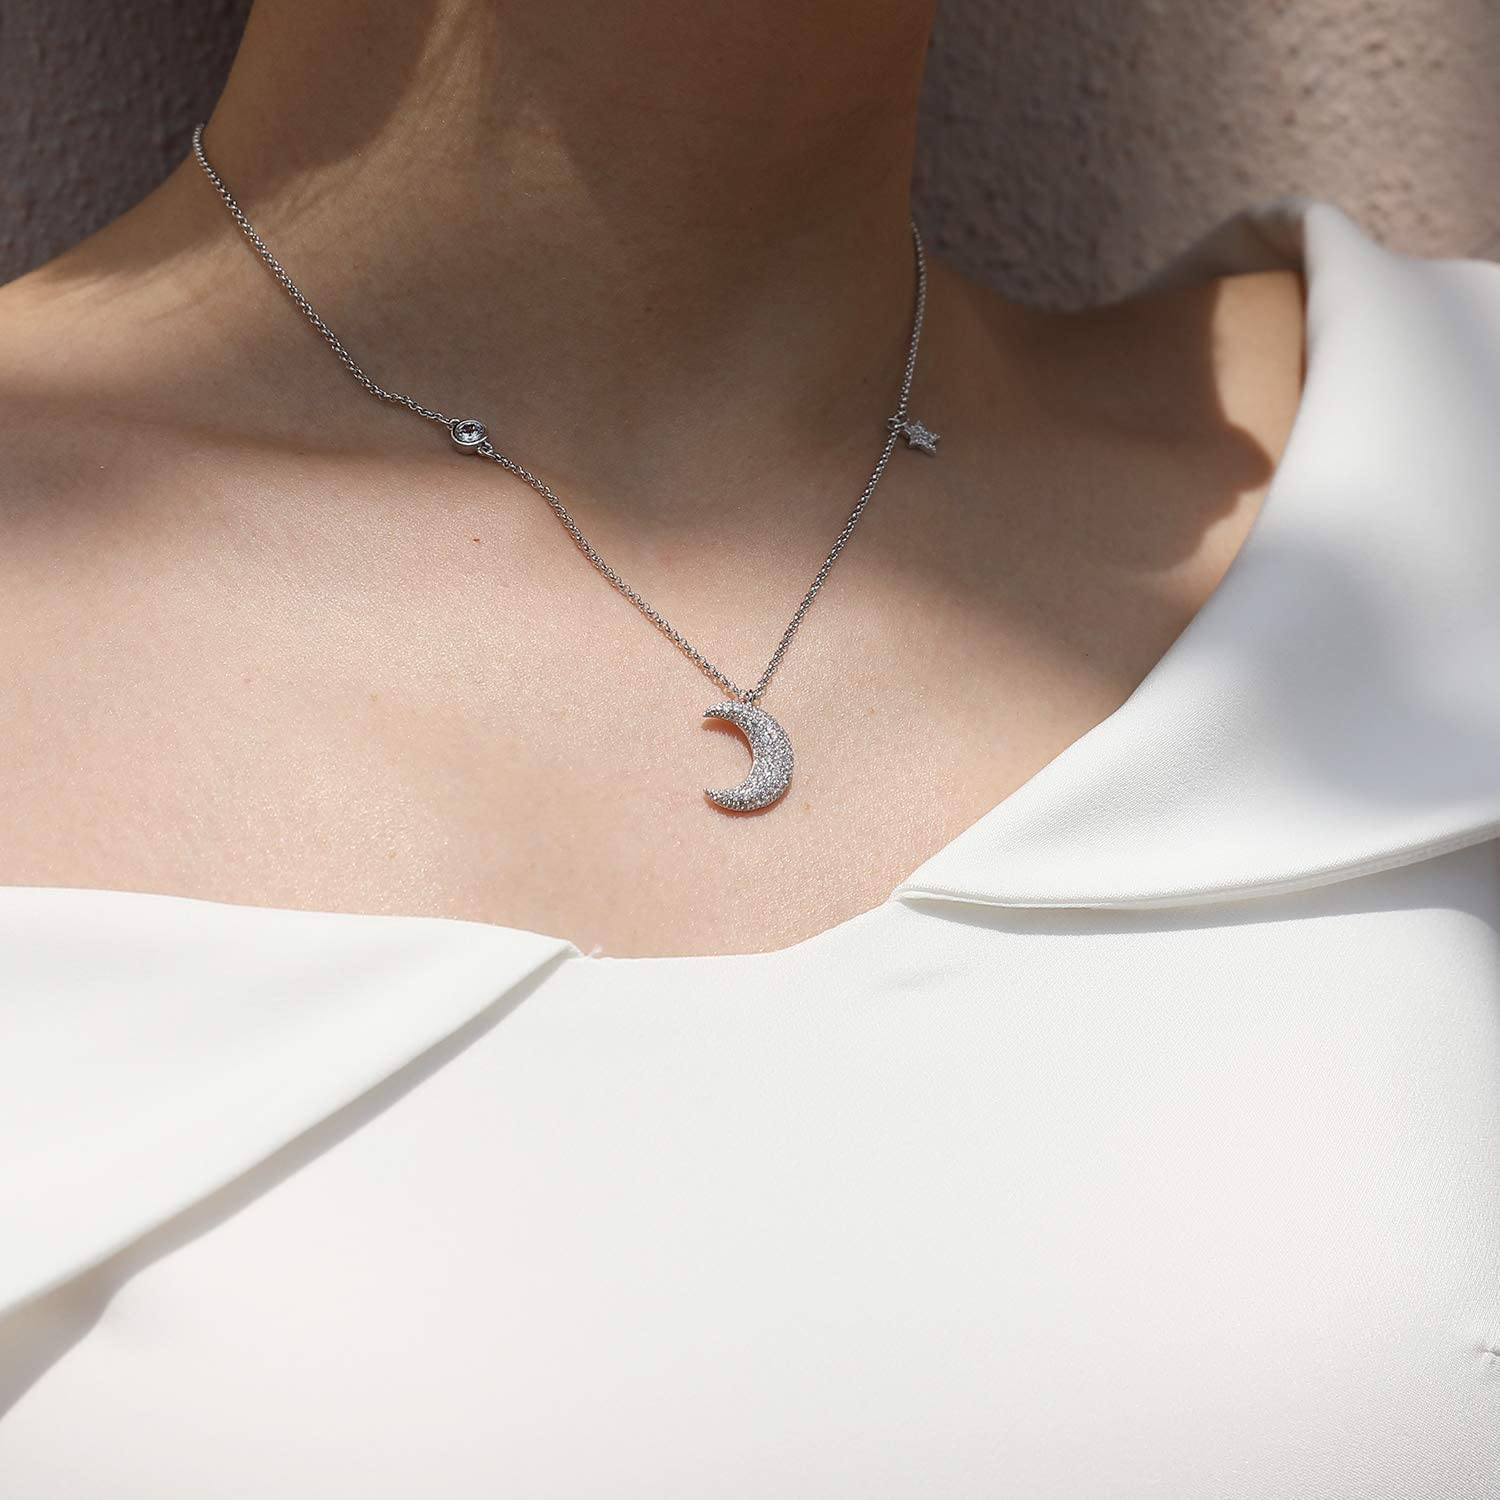 Star Moon Necklaces 3A Cubic Zirconia for Women Jewelry Pendant Chain for Girls Christmas Gift